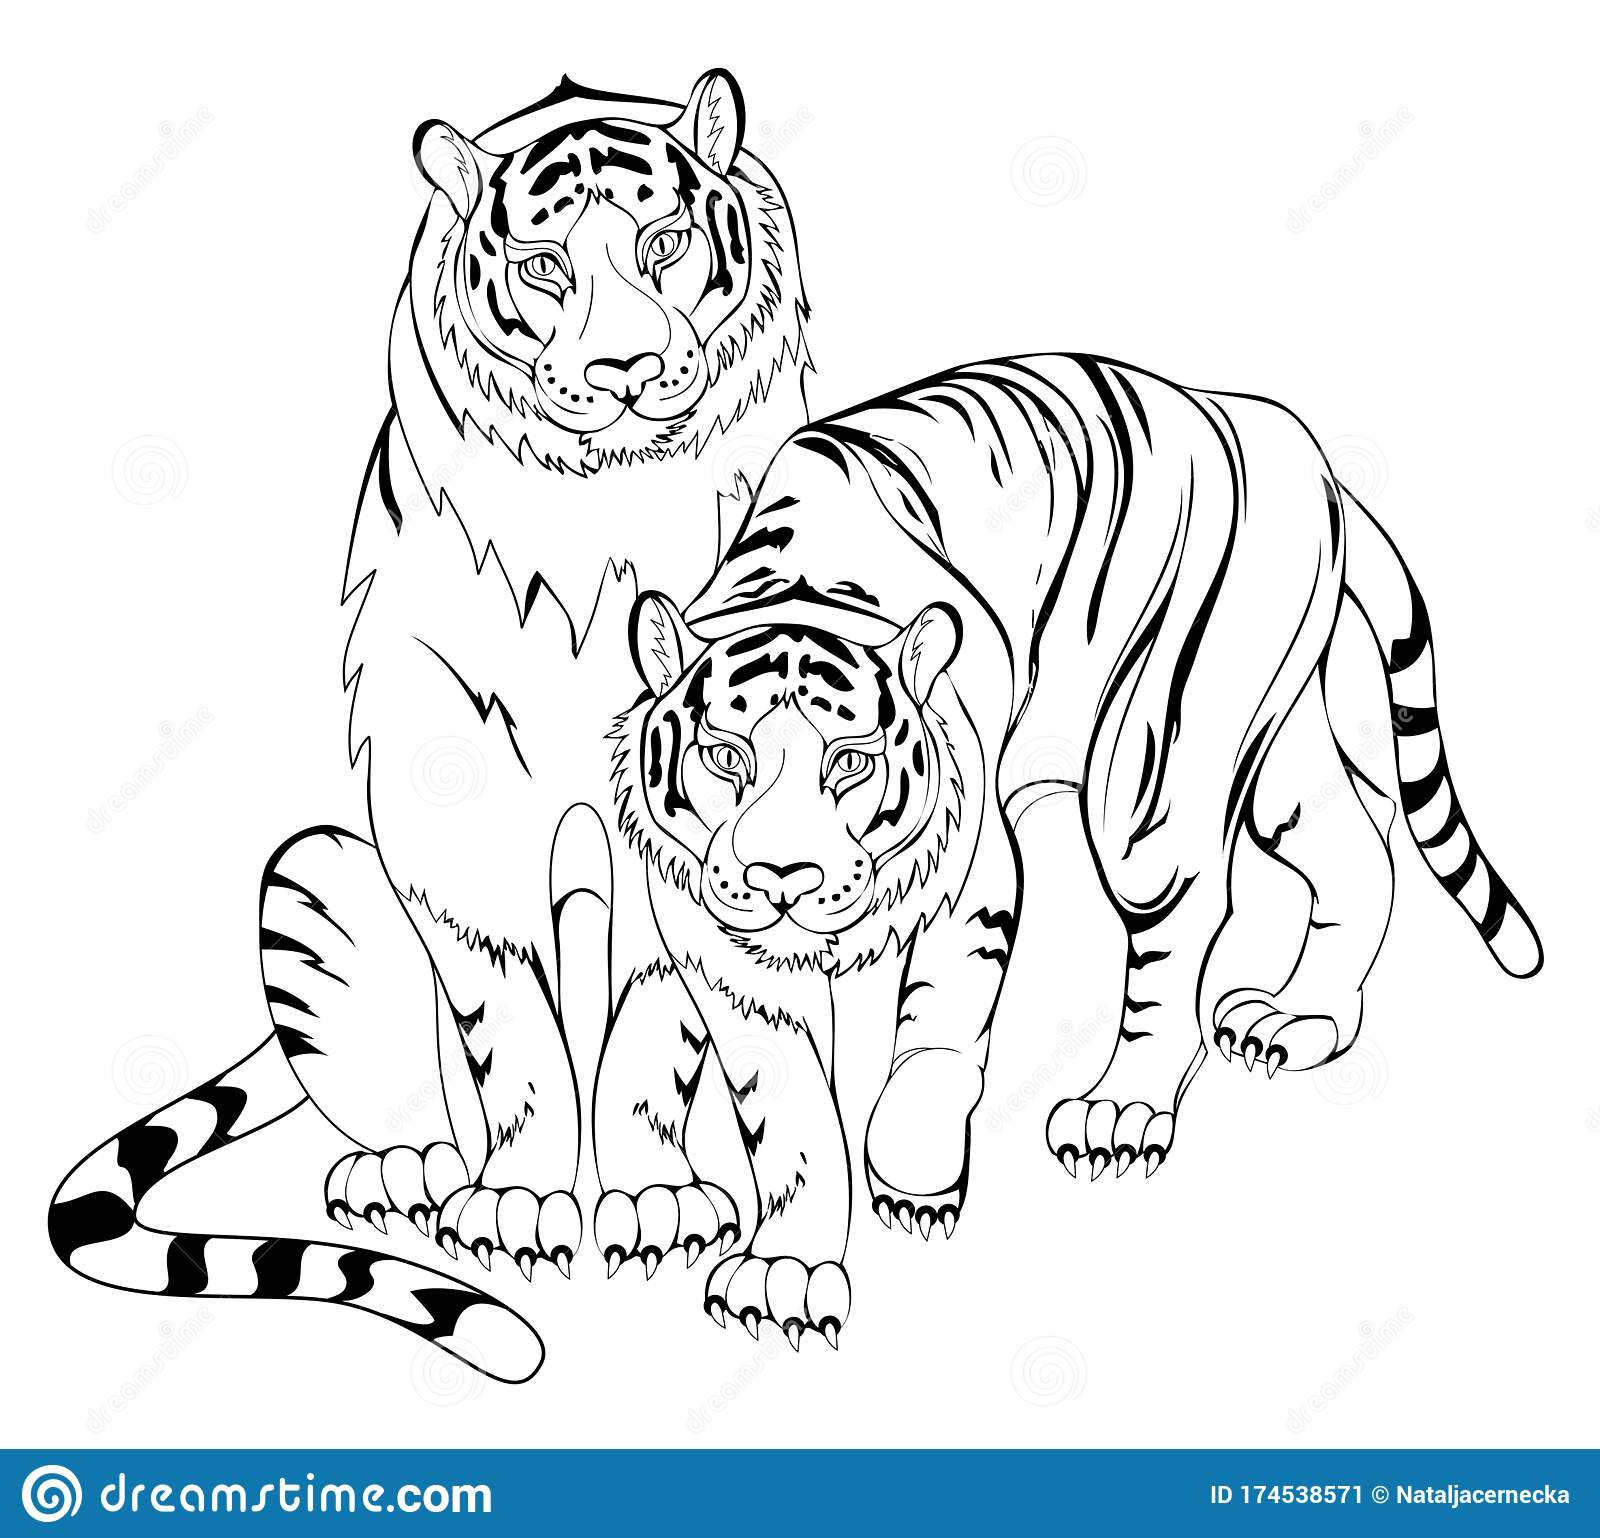 Black And White Page For Kids Coloring Book Illustration